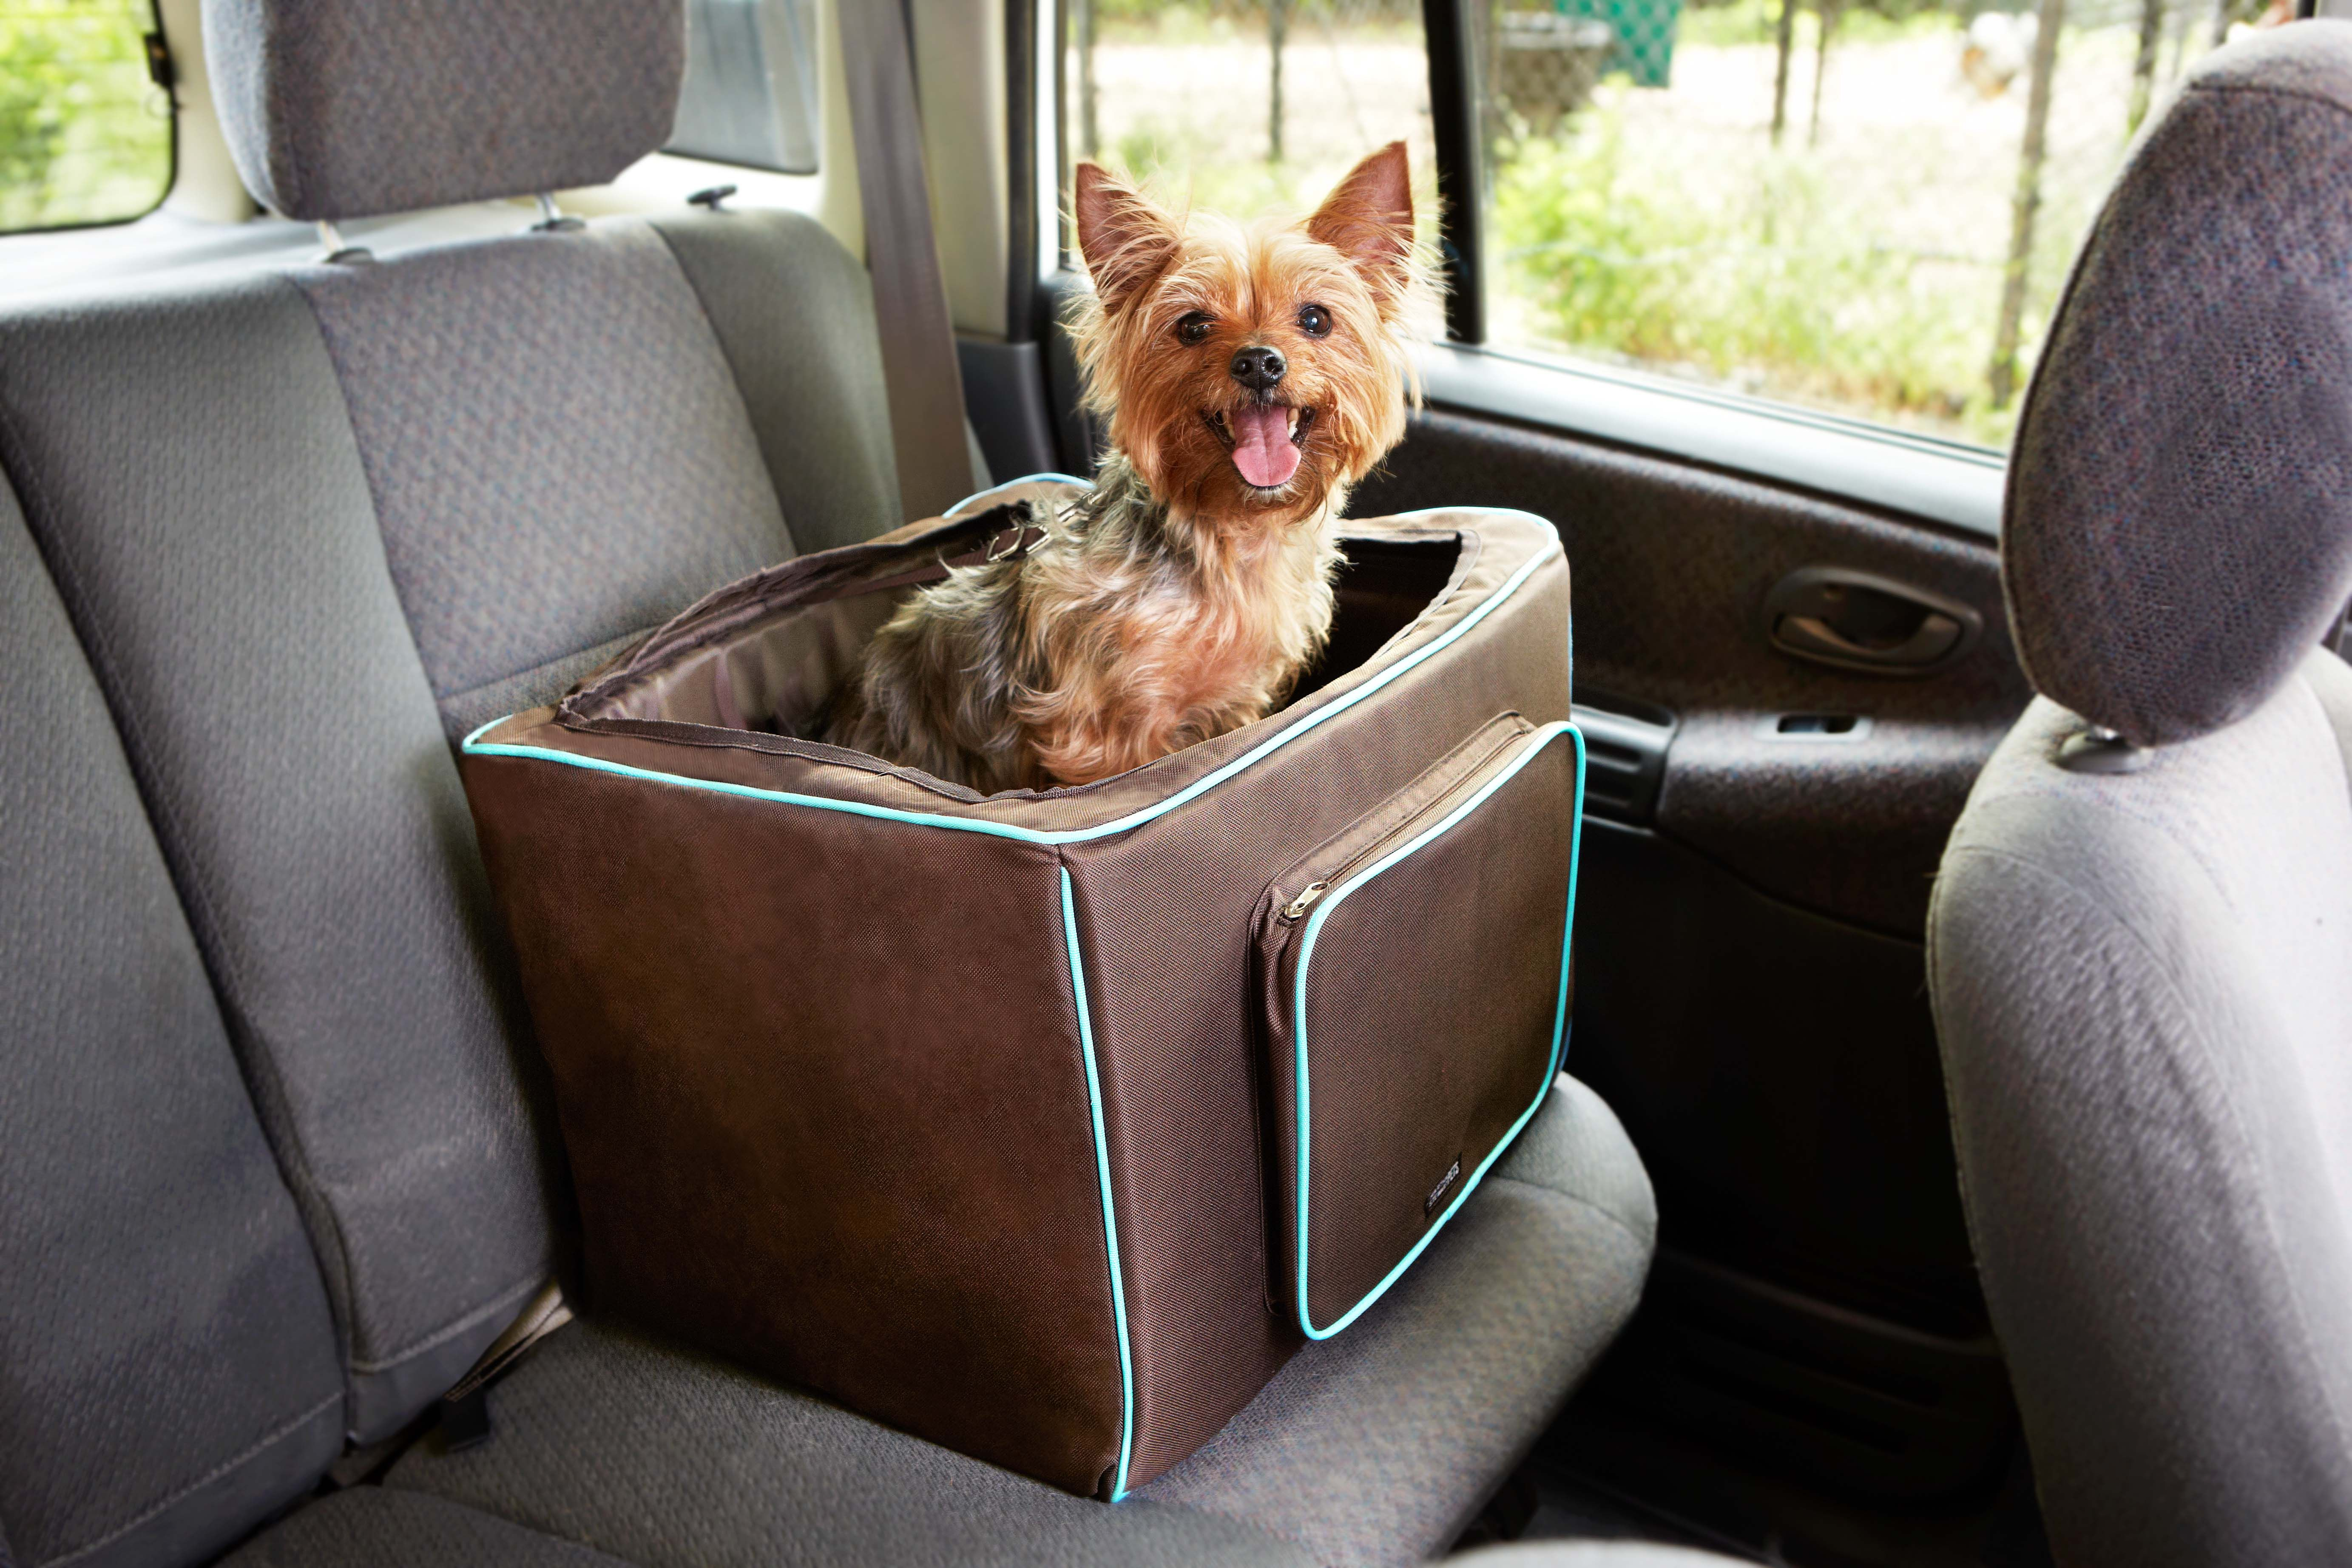 Planning A Summer Road Trip Travel Safely With The Martha Stewart Pets Booster Seat For Dogs Marthastewartpets Petsmart Pets Pet Dogs Martha Stewart Pets